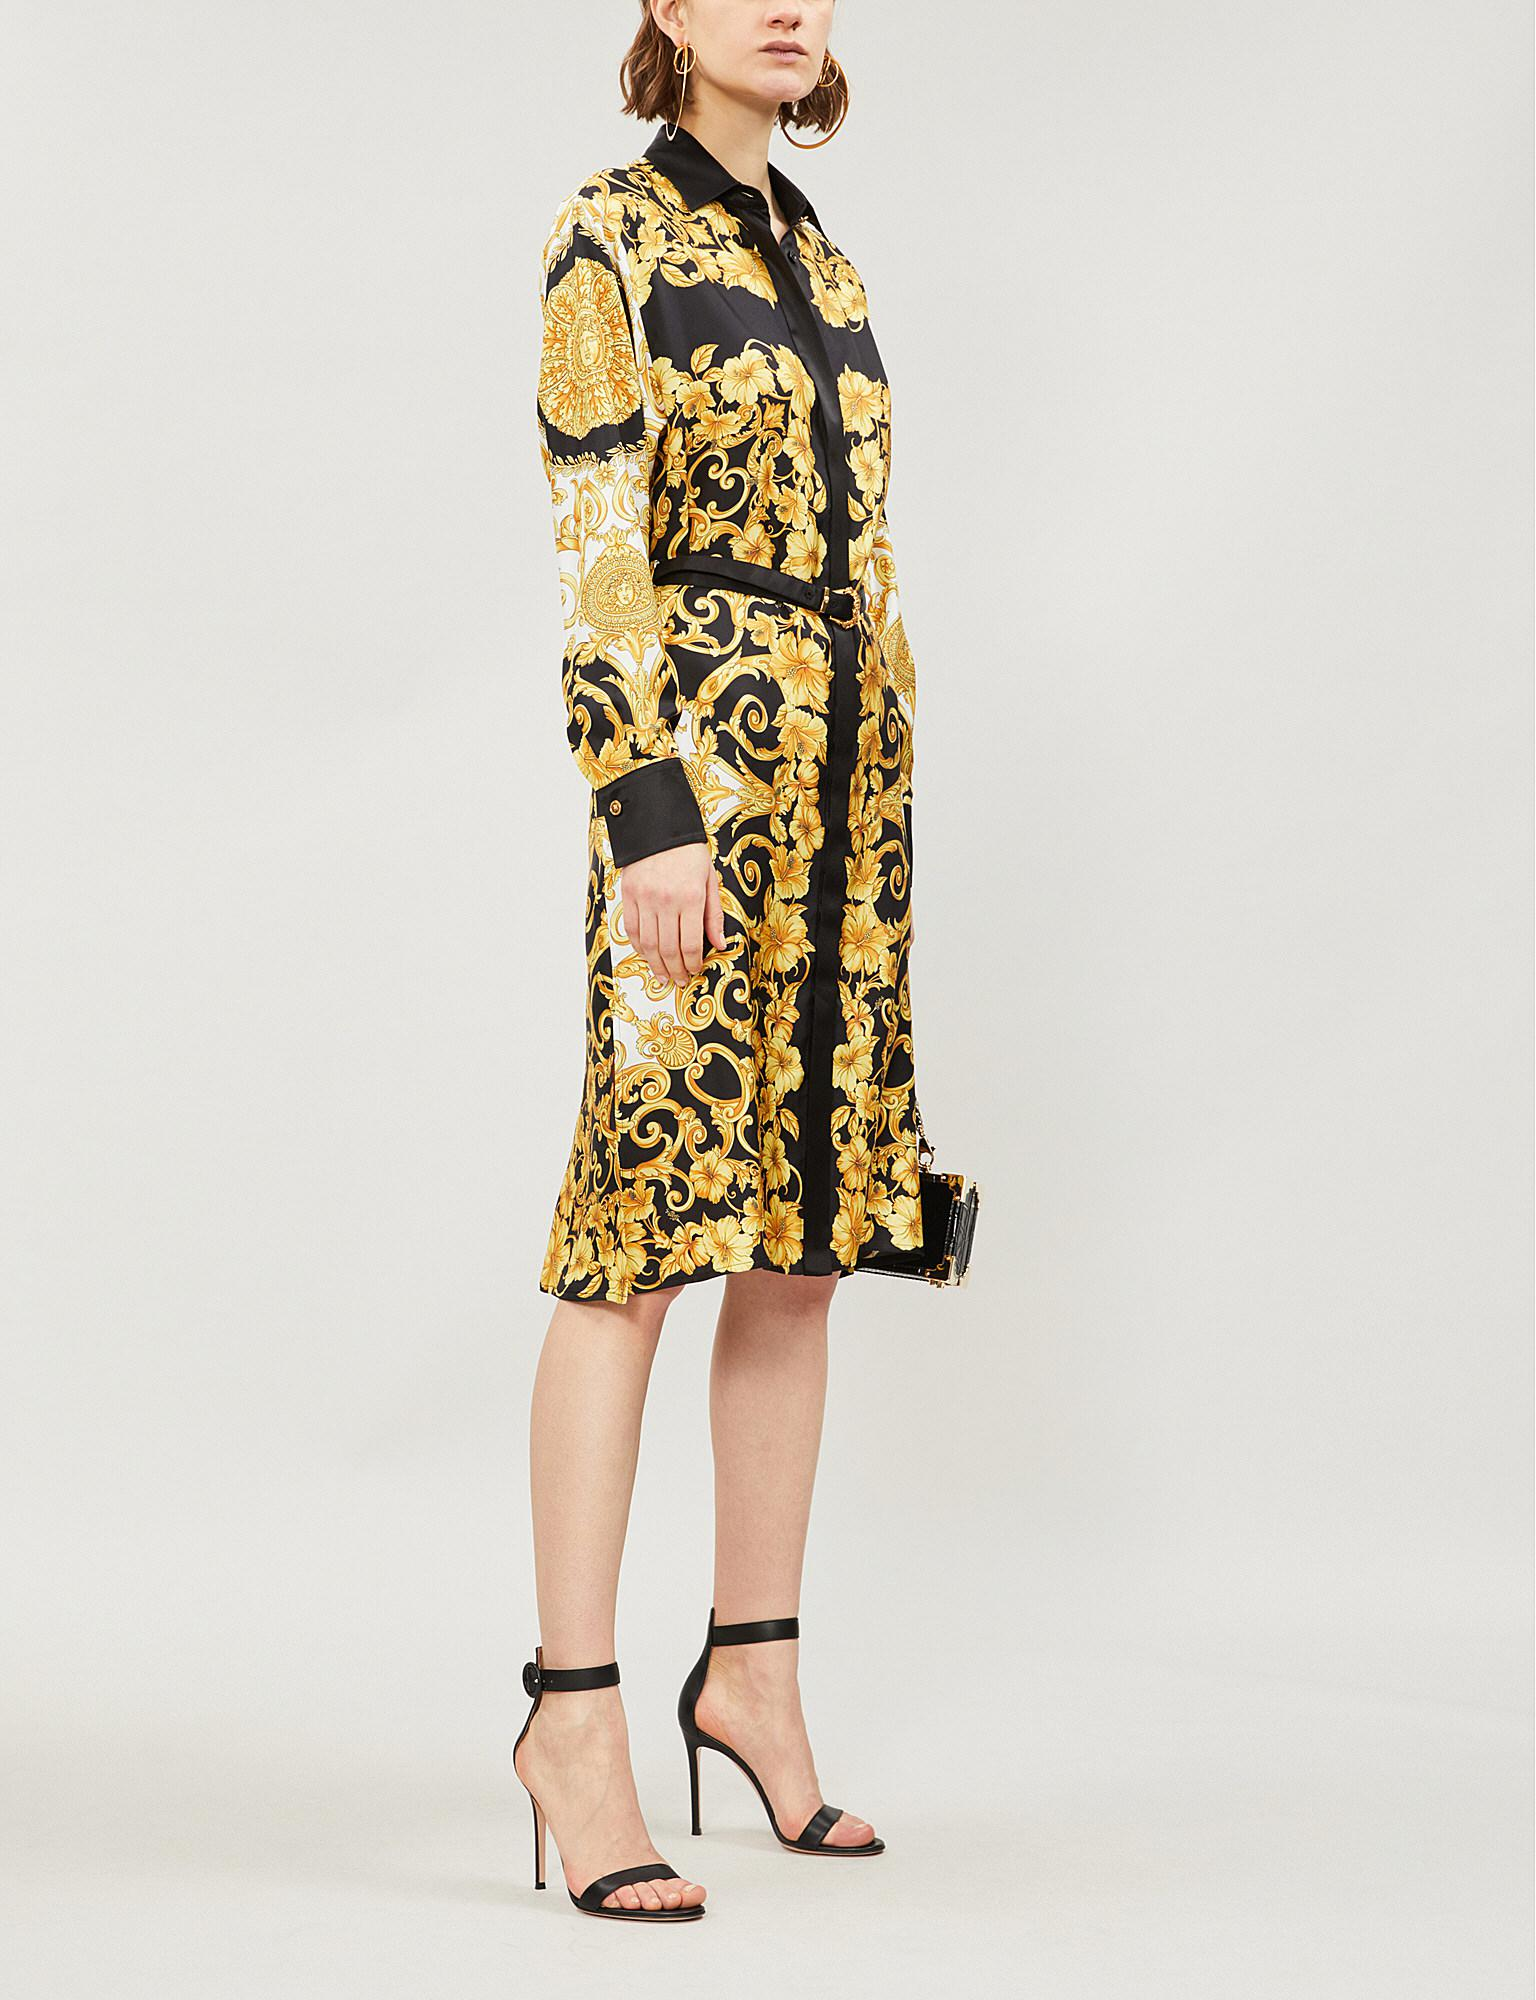 573e2c48080a Lyst - Versace Baroque-print Silk-twill Dress in Yellow